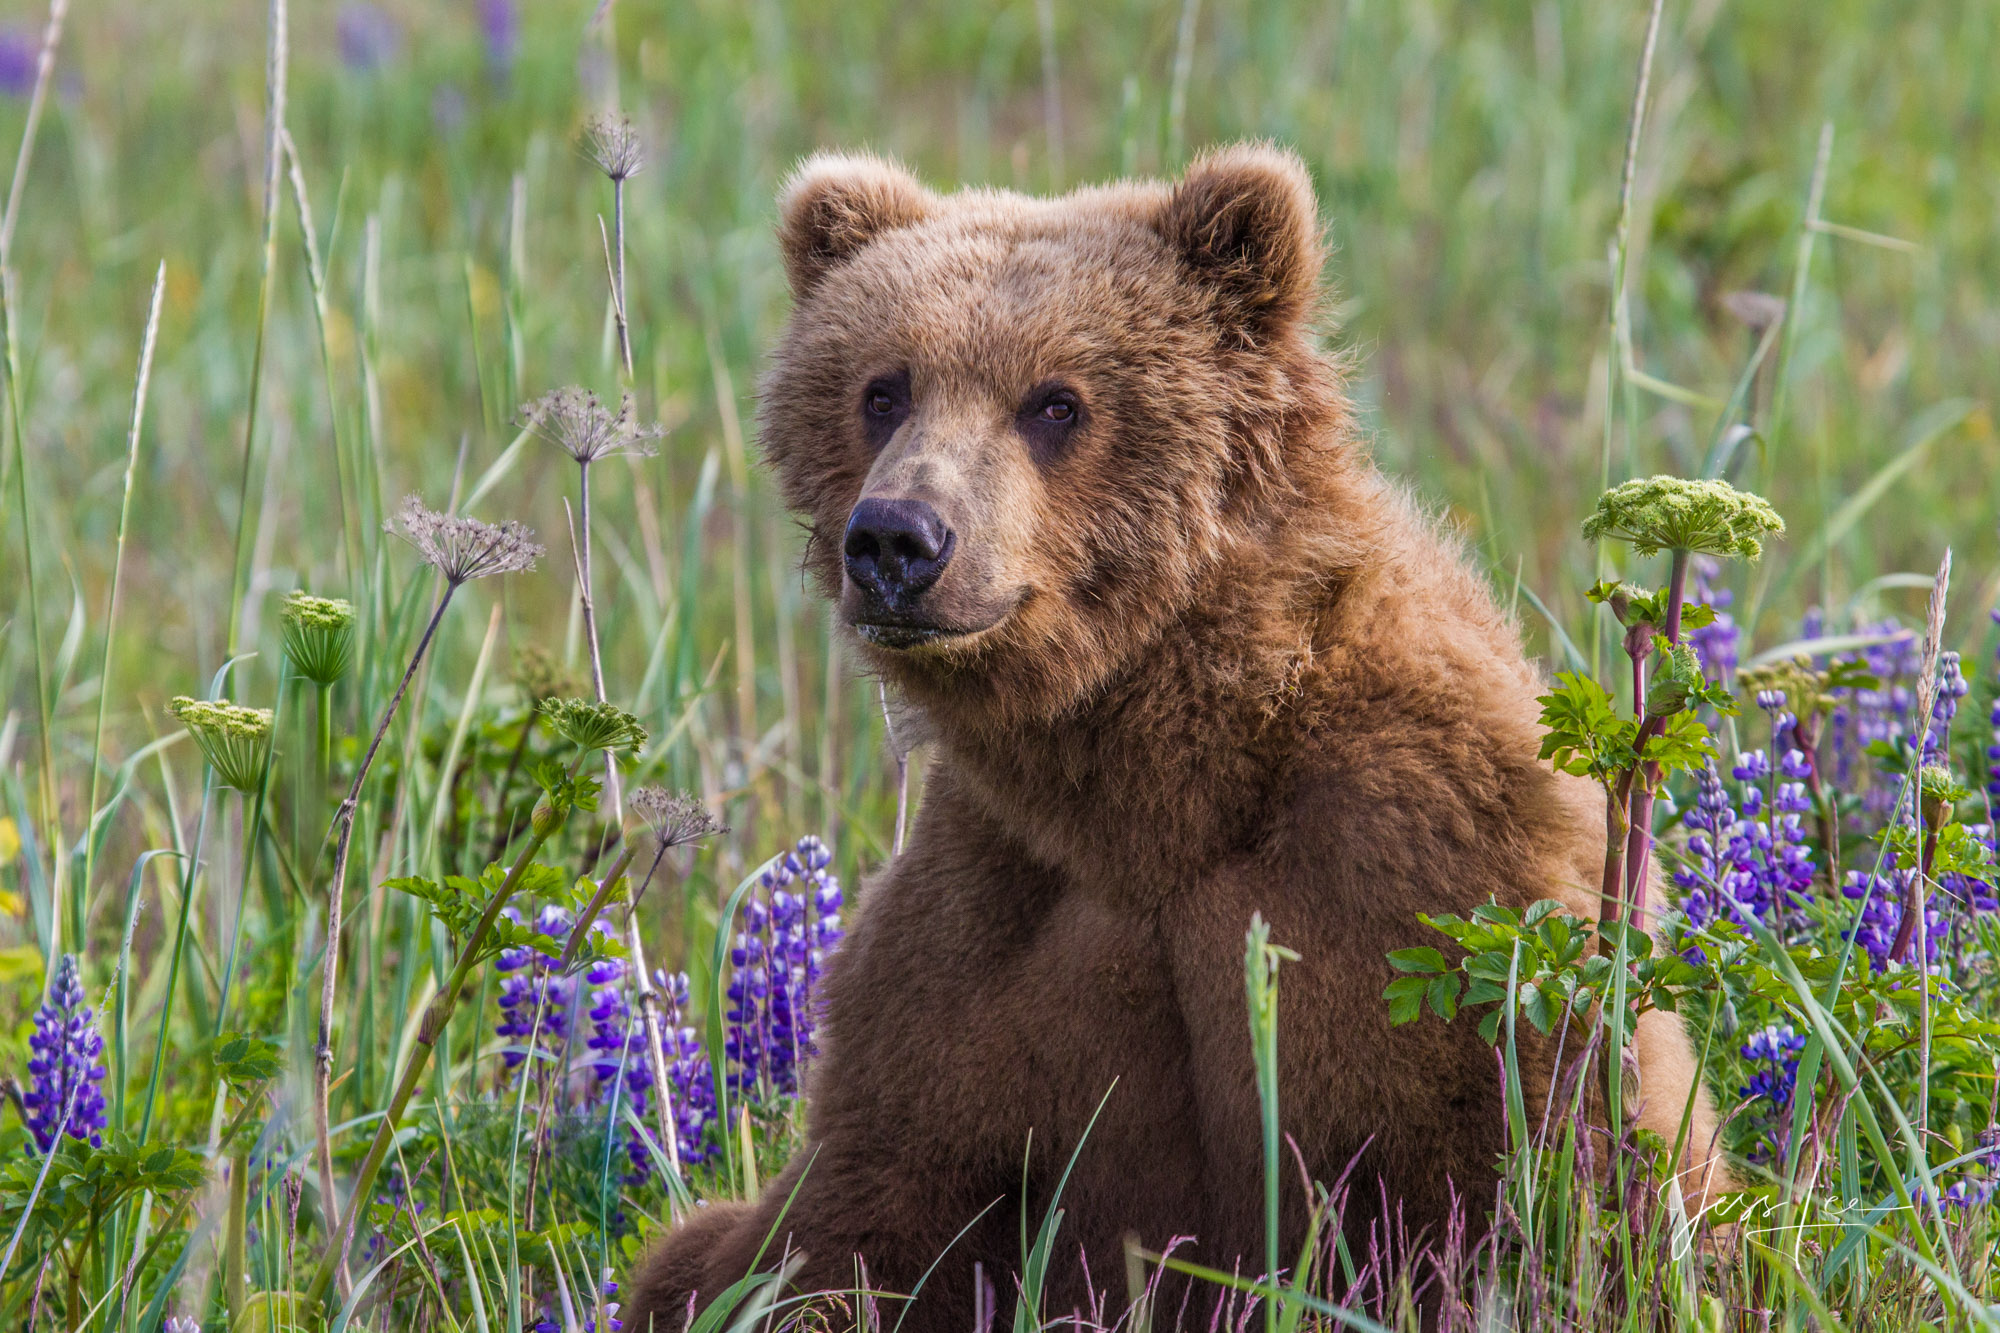 Grizzly in flowers, alaska, bear, brown, brown bear, coastal, lake clark, national park, Alaska*, bear*, brown bear*, brown bears*, brown*, coastal*, cubs*, grizzlies*, Grizzly*, Jess Lee*, Cooke inle, photo